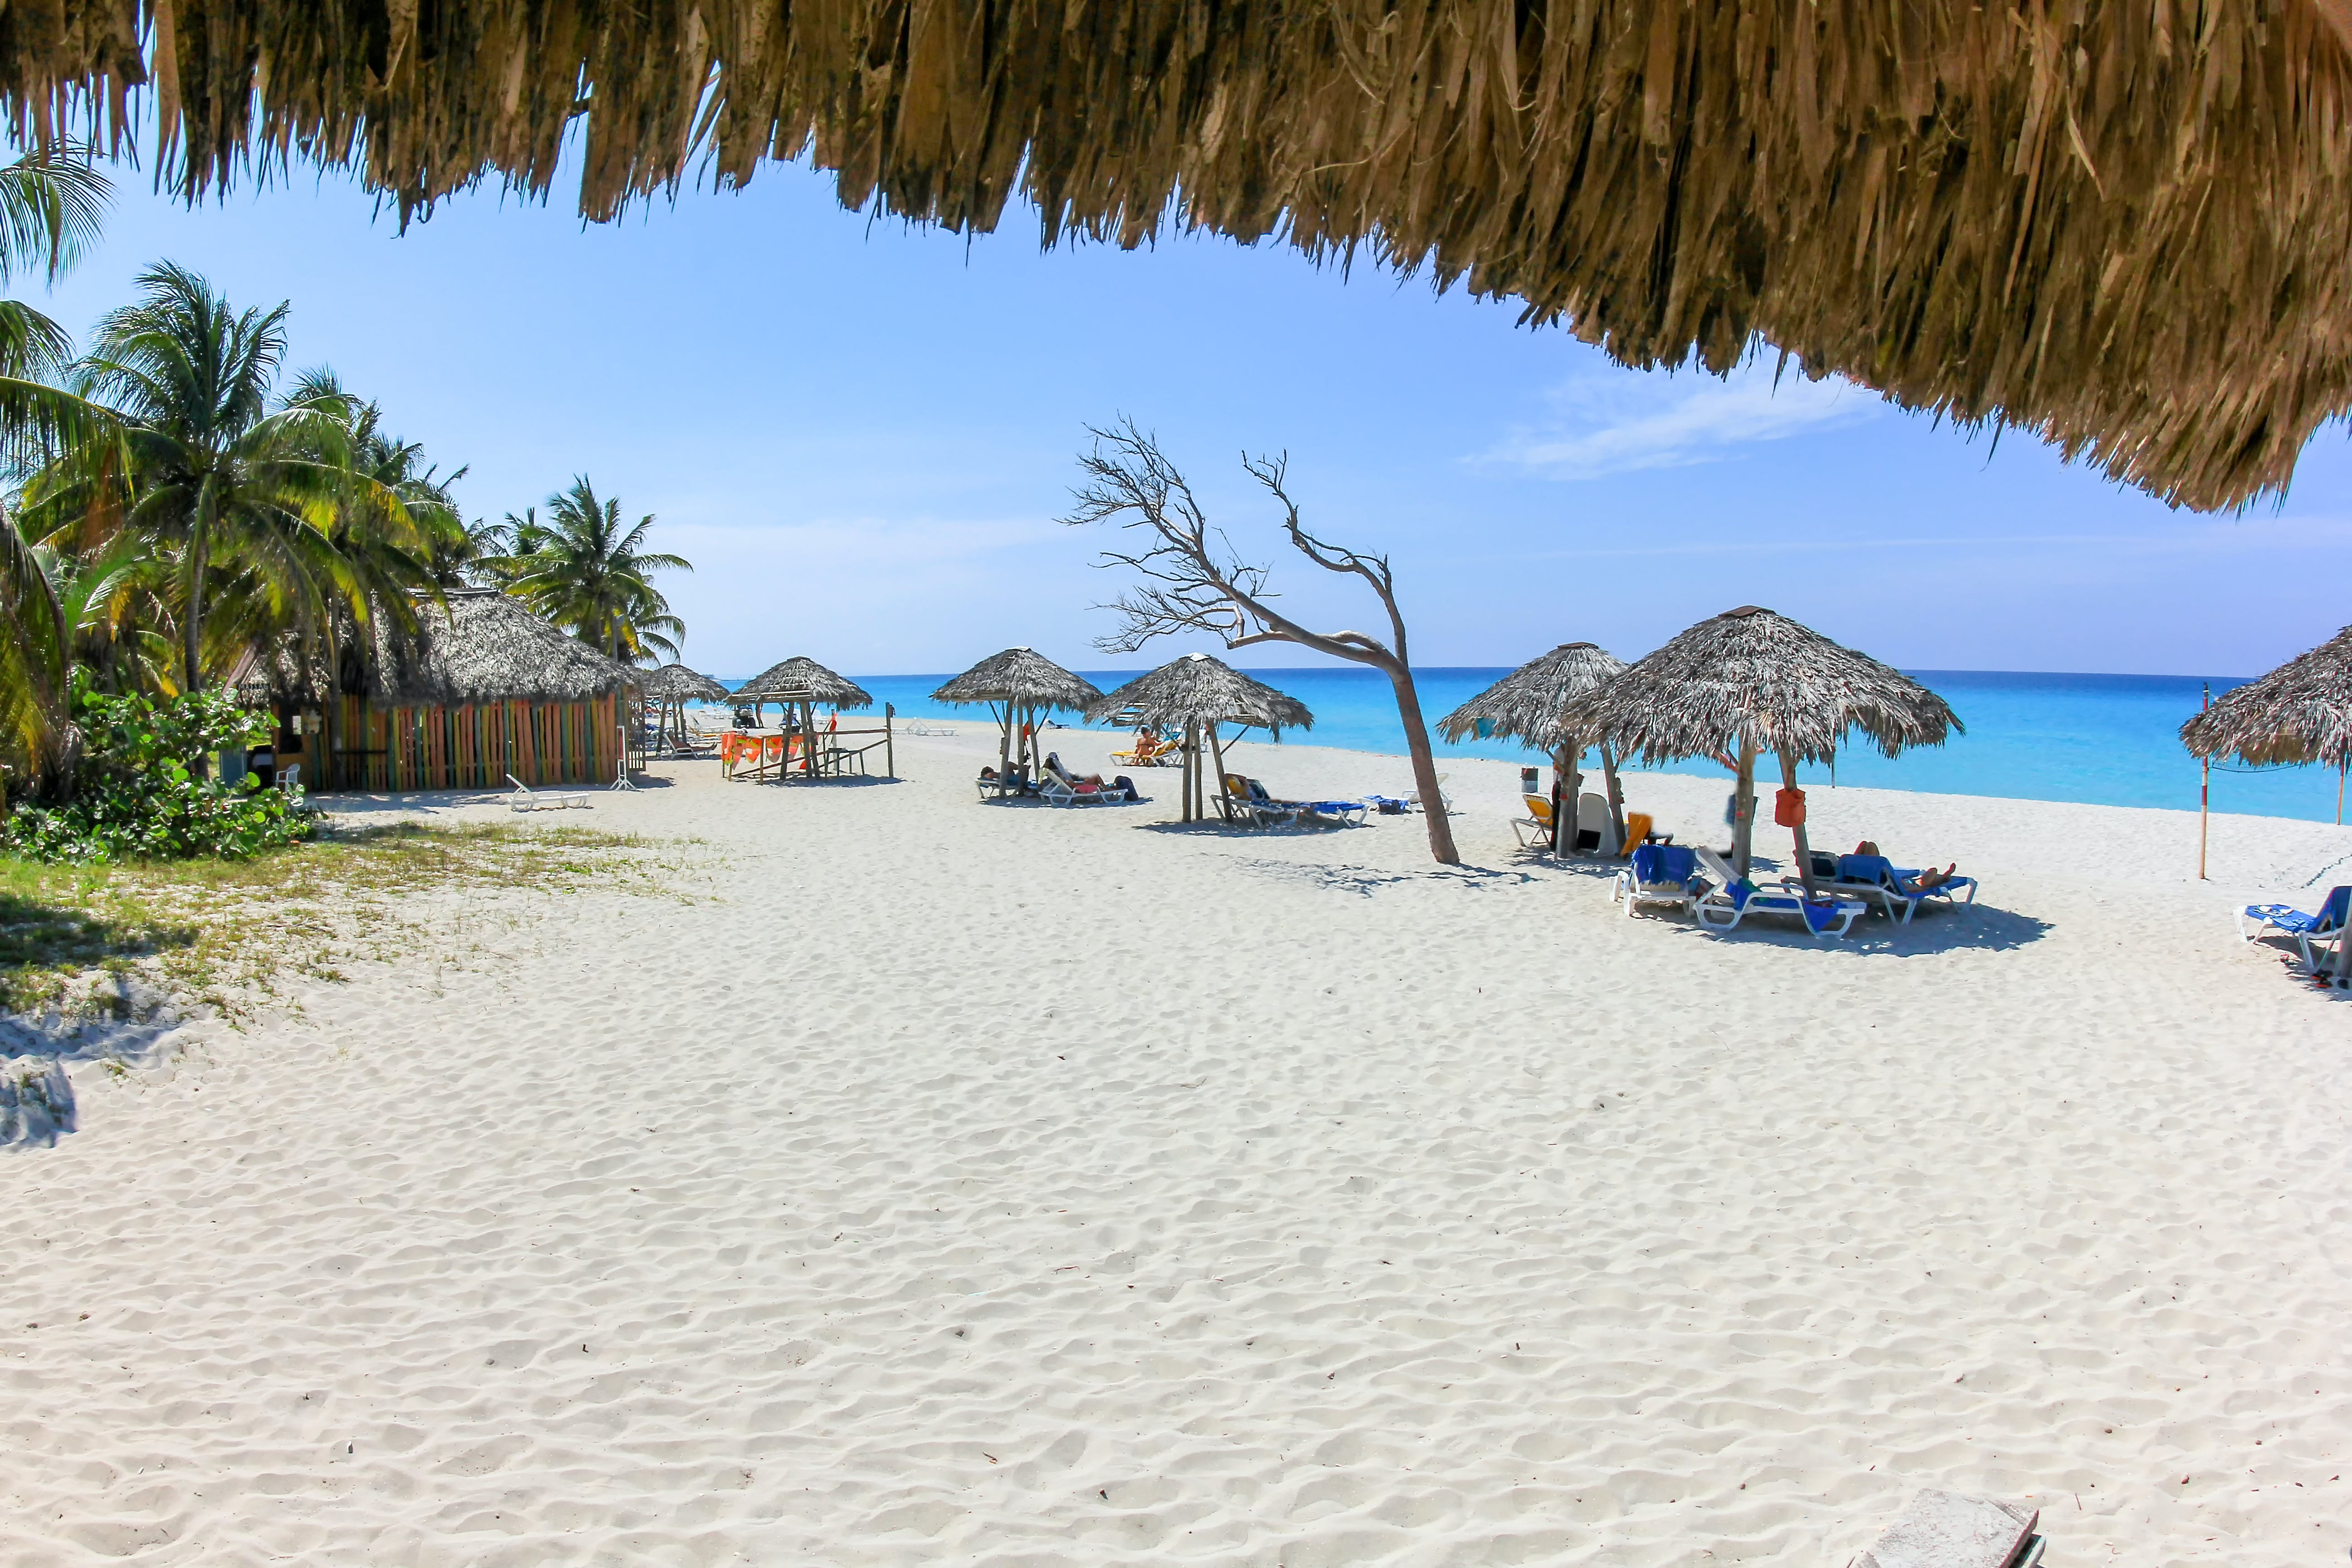 Varadero Beach is widely regarded as Cuba's most stunning beach.